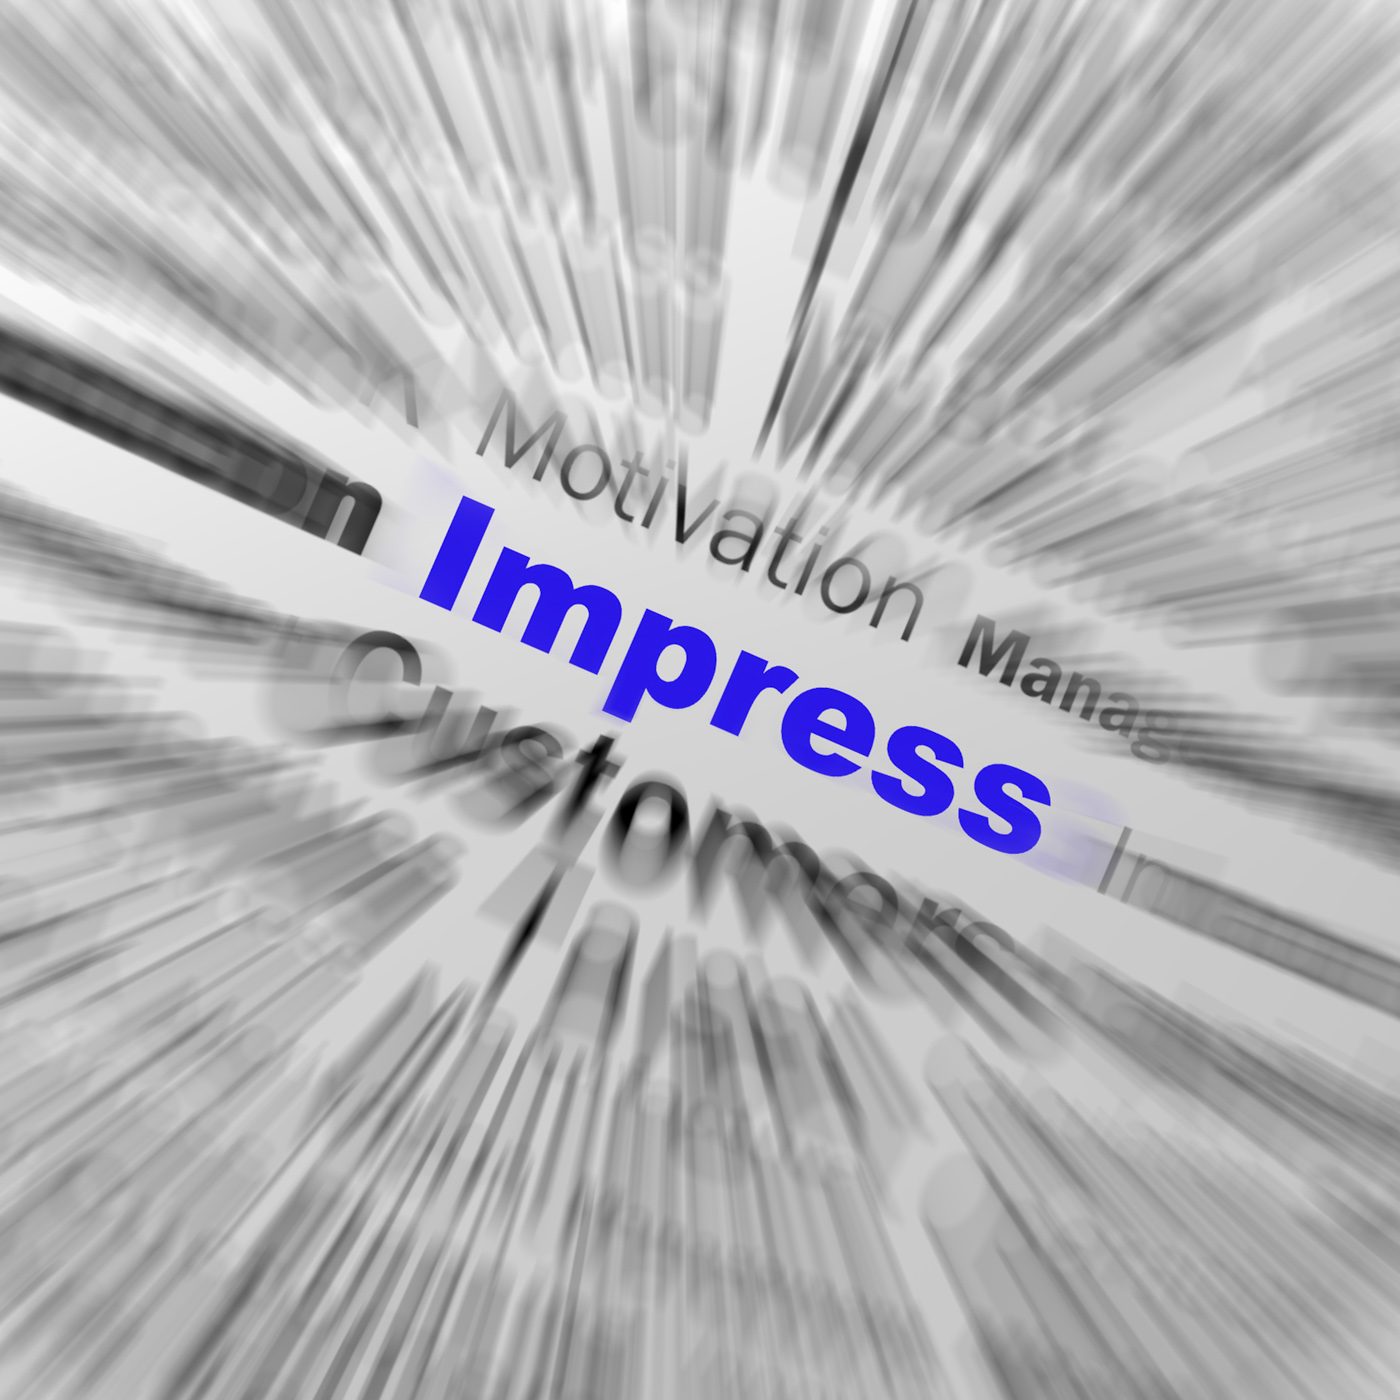 Impress Sphere Definition Displays Satisfactory Impression Or Excellen, Amazing, Outstanding, Support, Successful, HQ Photo